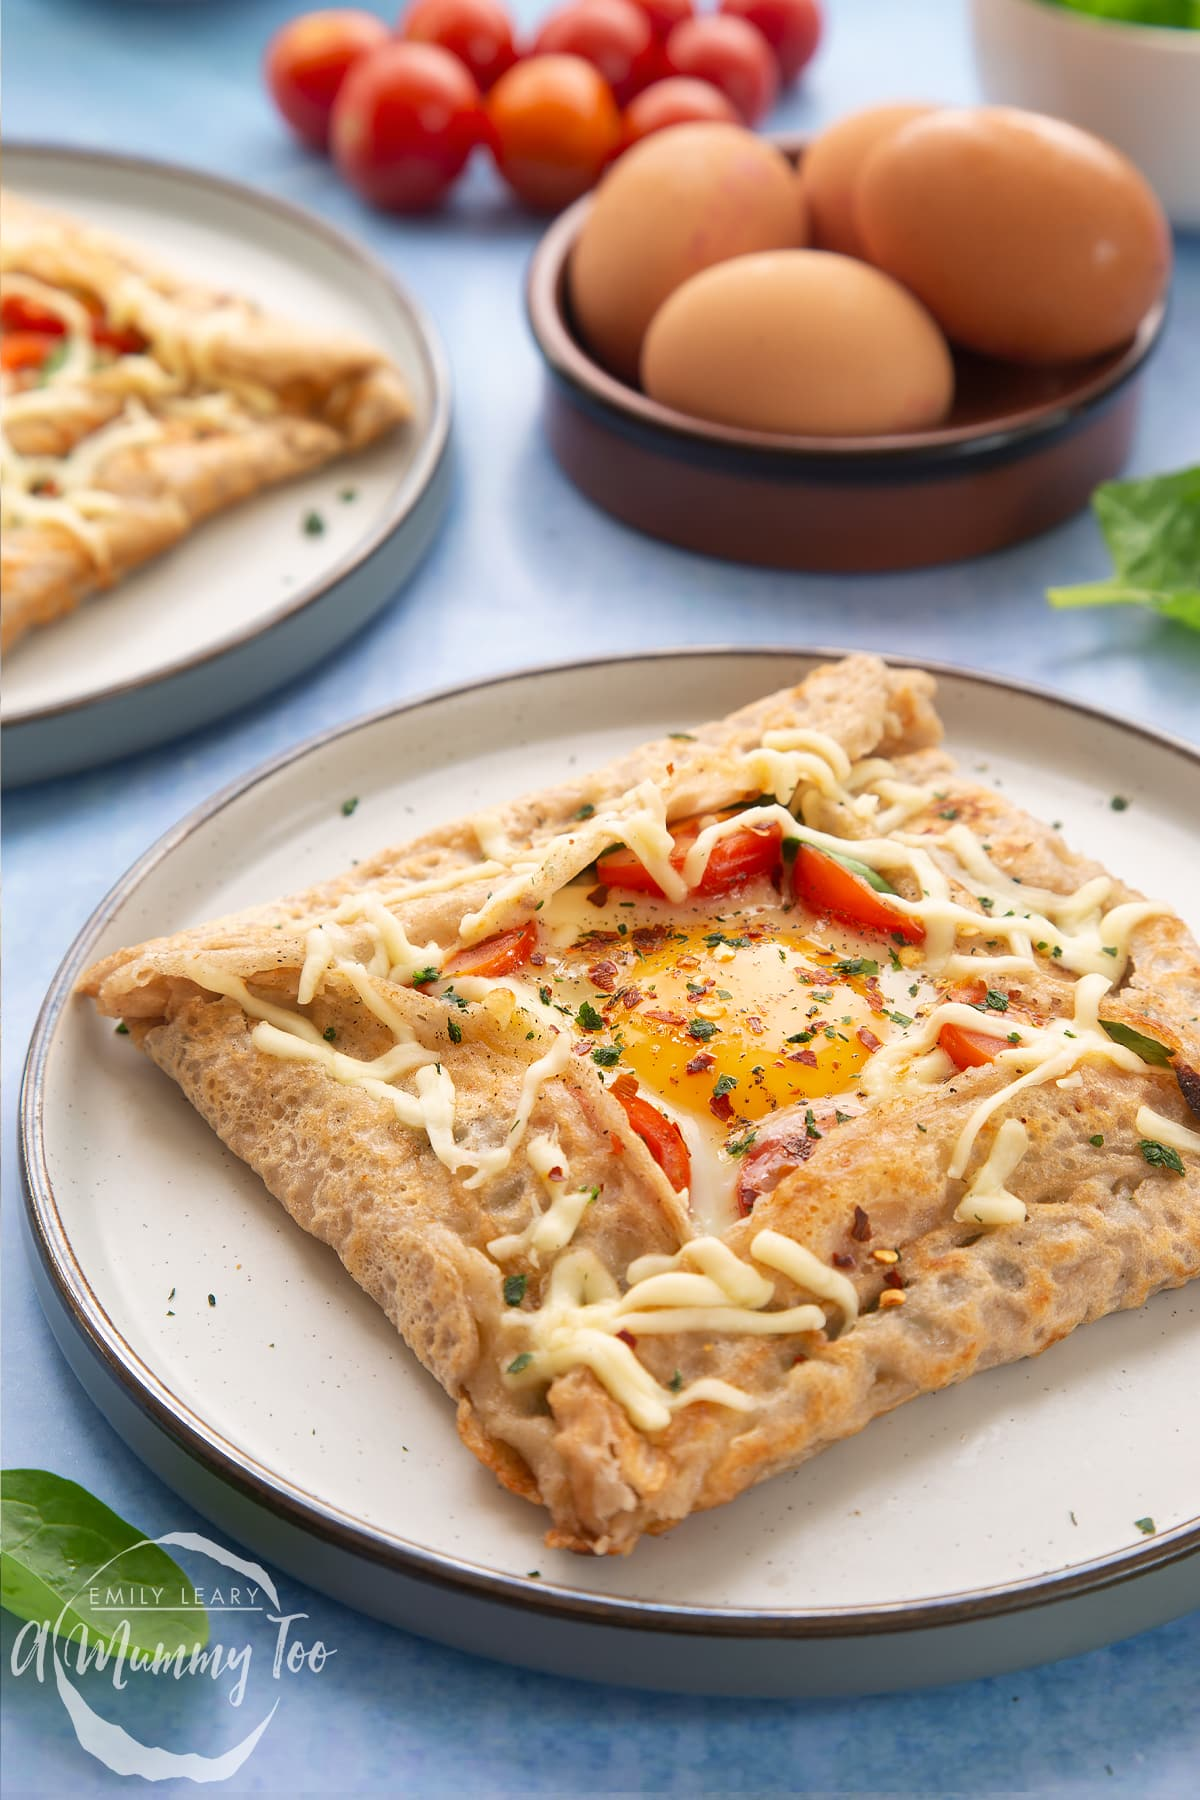 A buckwheat galette on plate with ingredients and another plate behind it. The galette is filled with spinach, tomatoes, cheese and a lightly cooked egg.